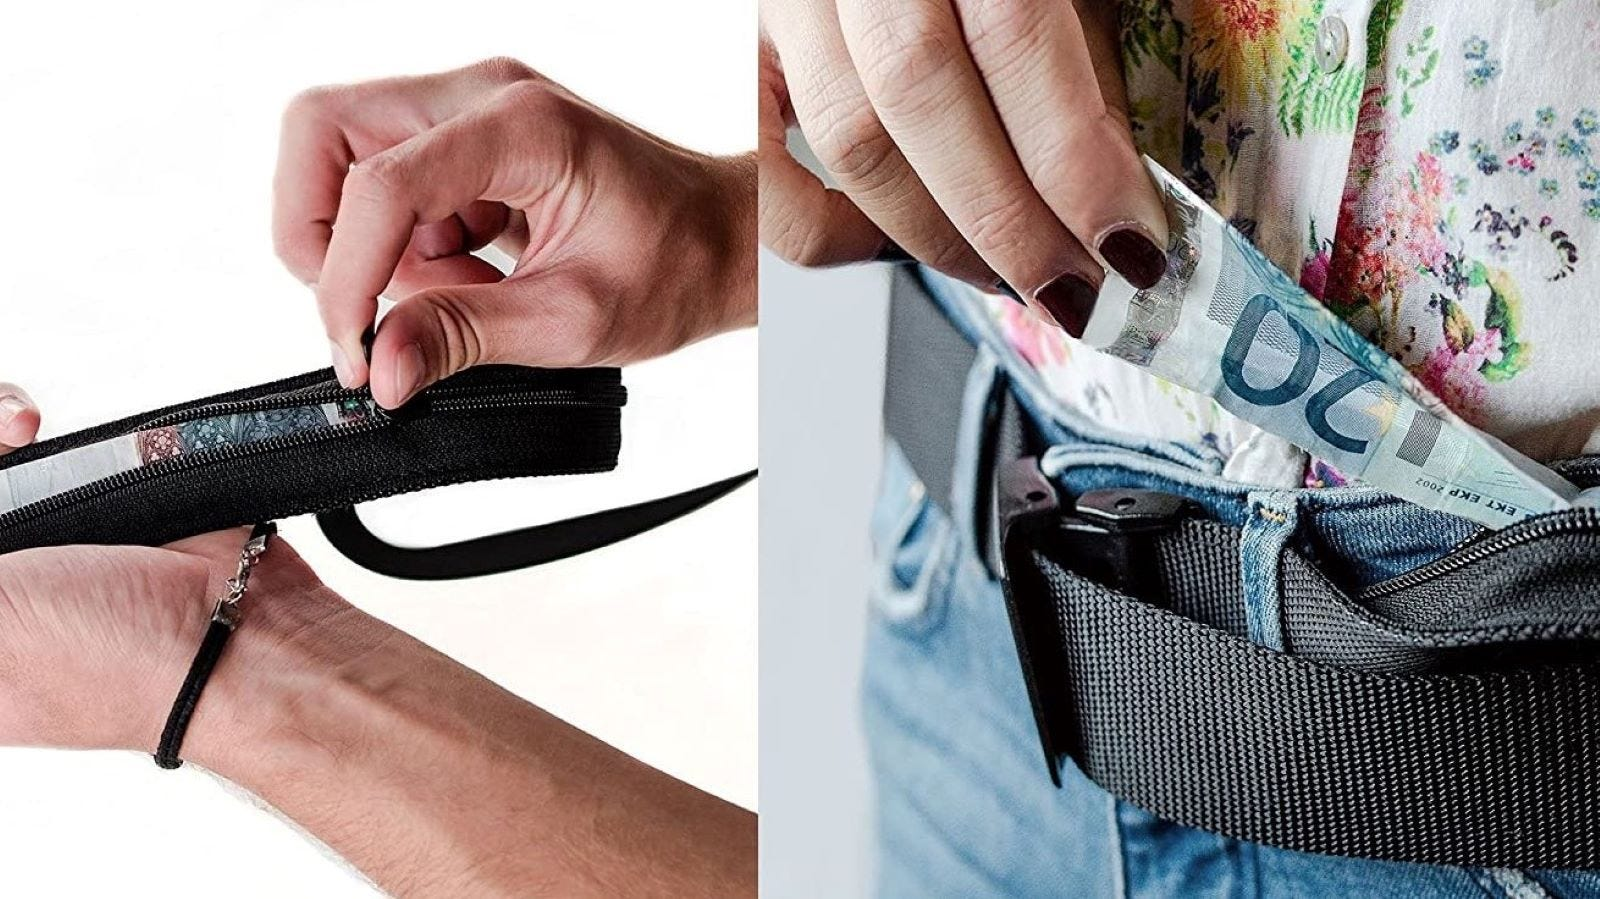 Two people putting money on the Travel Security Belt.